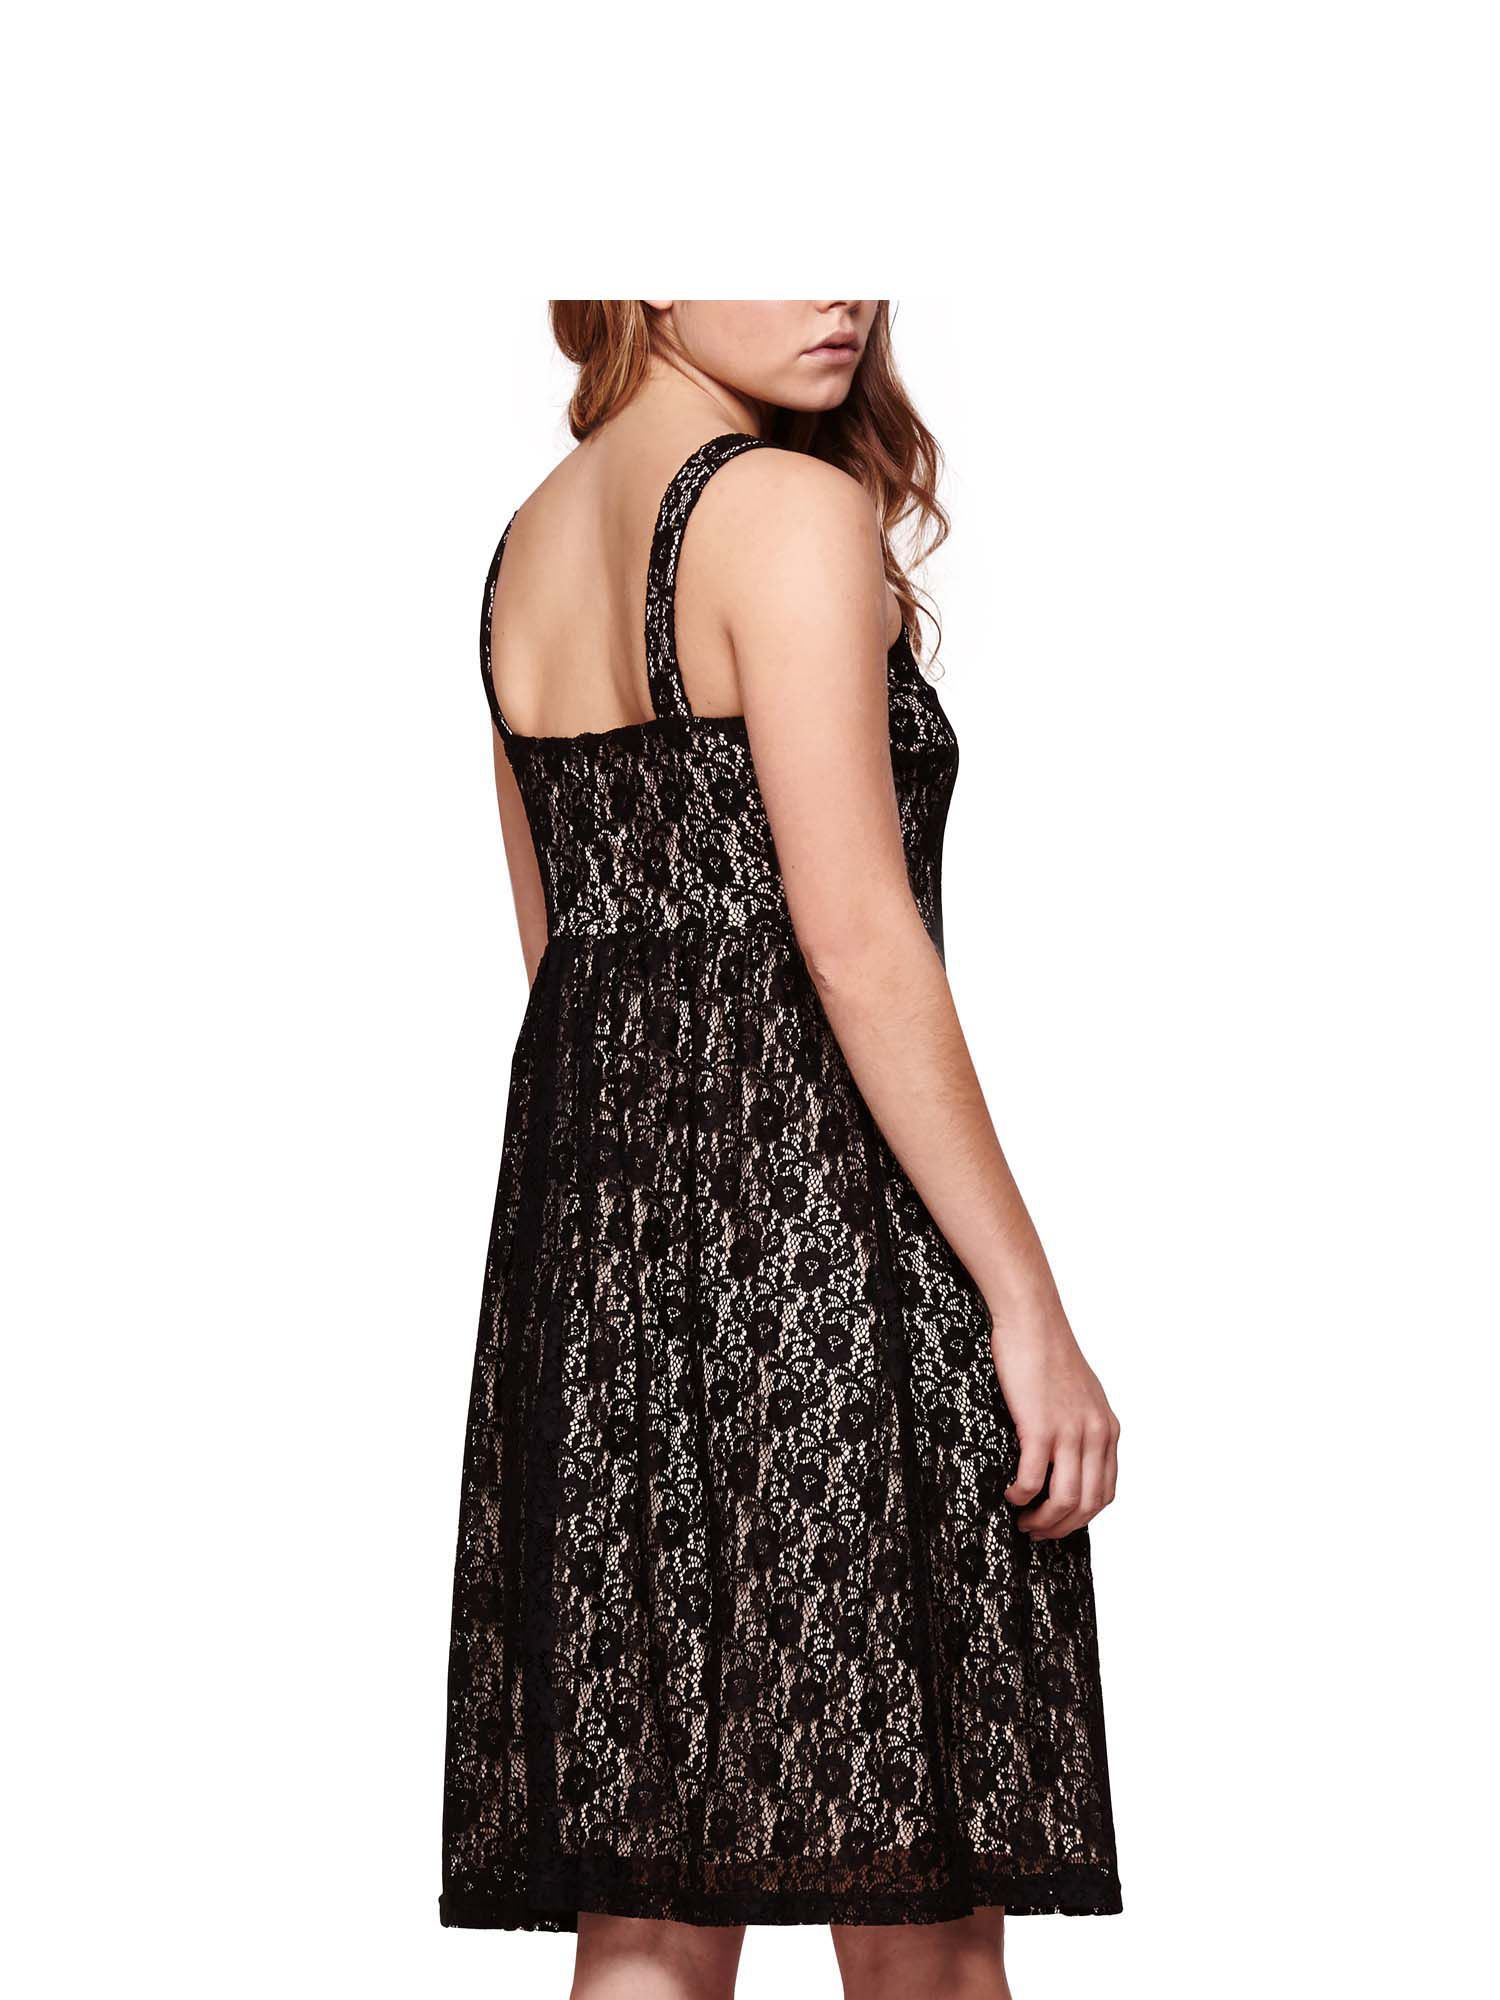 House of fraser strappy lace dress